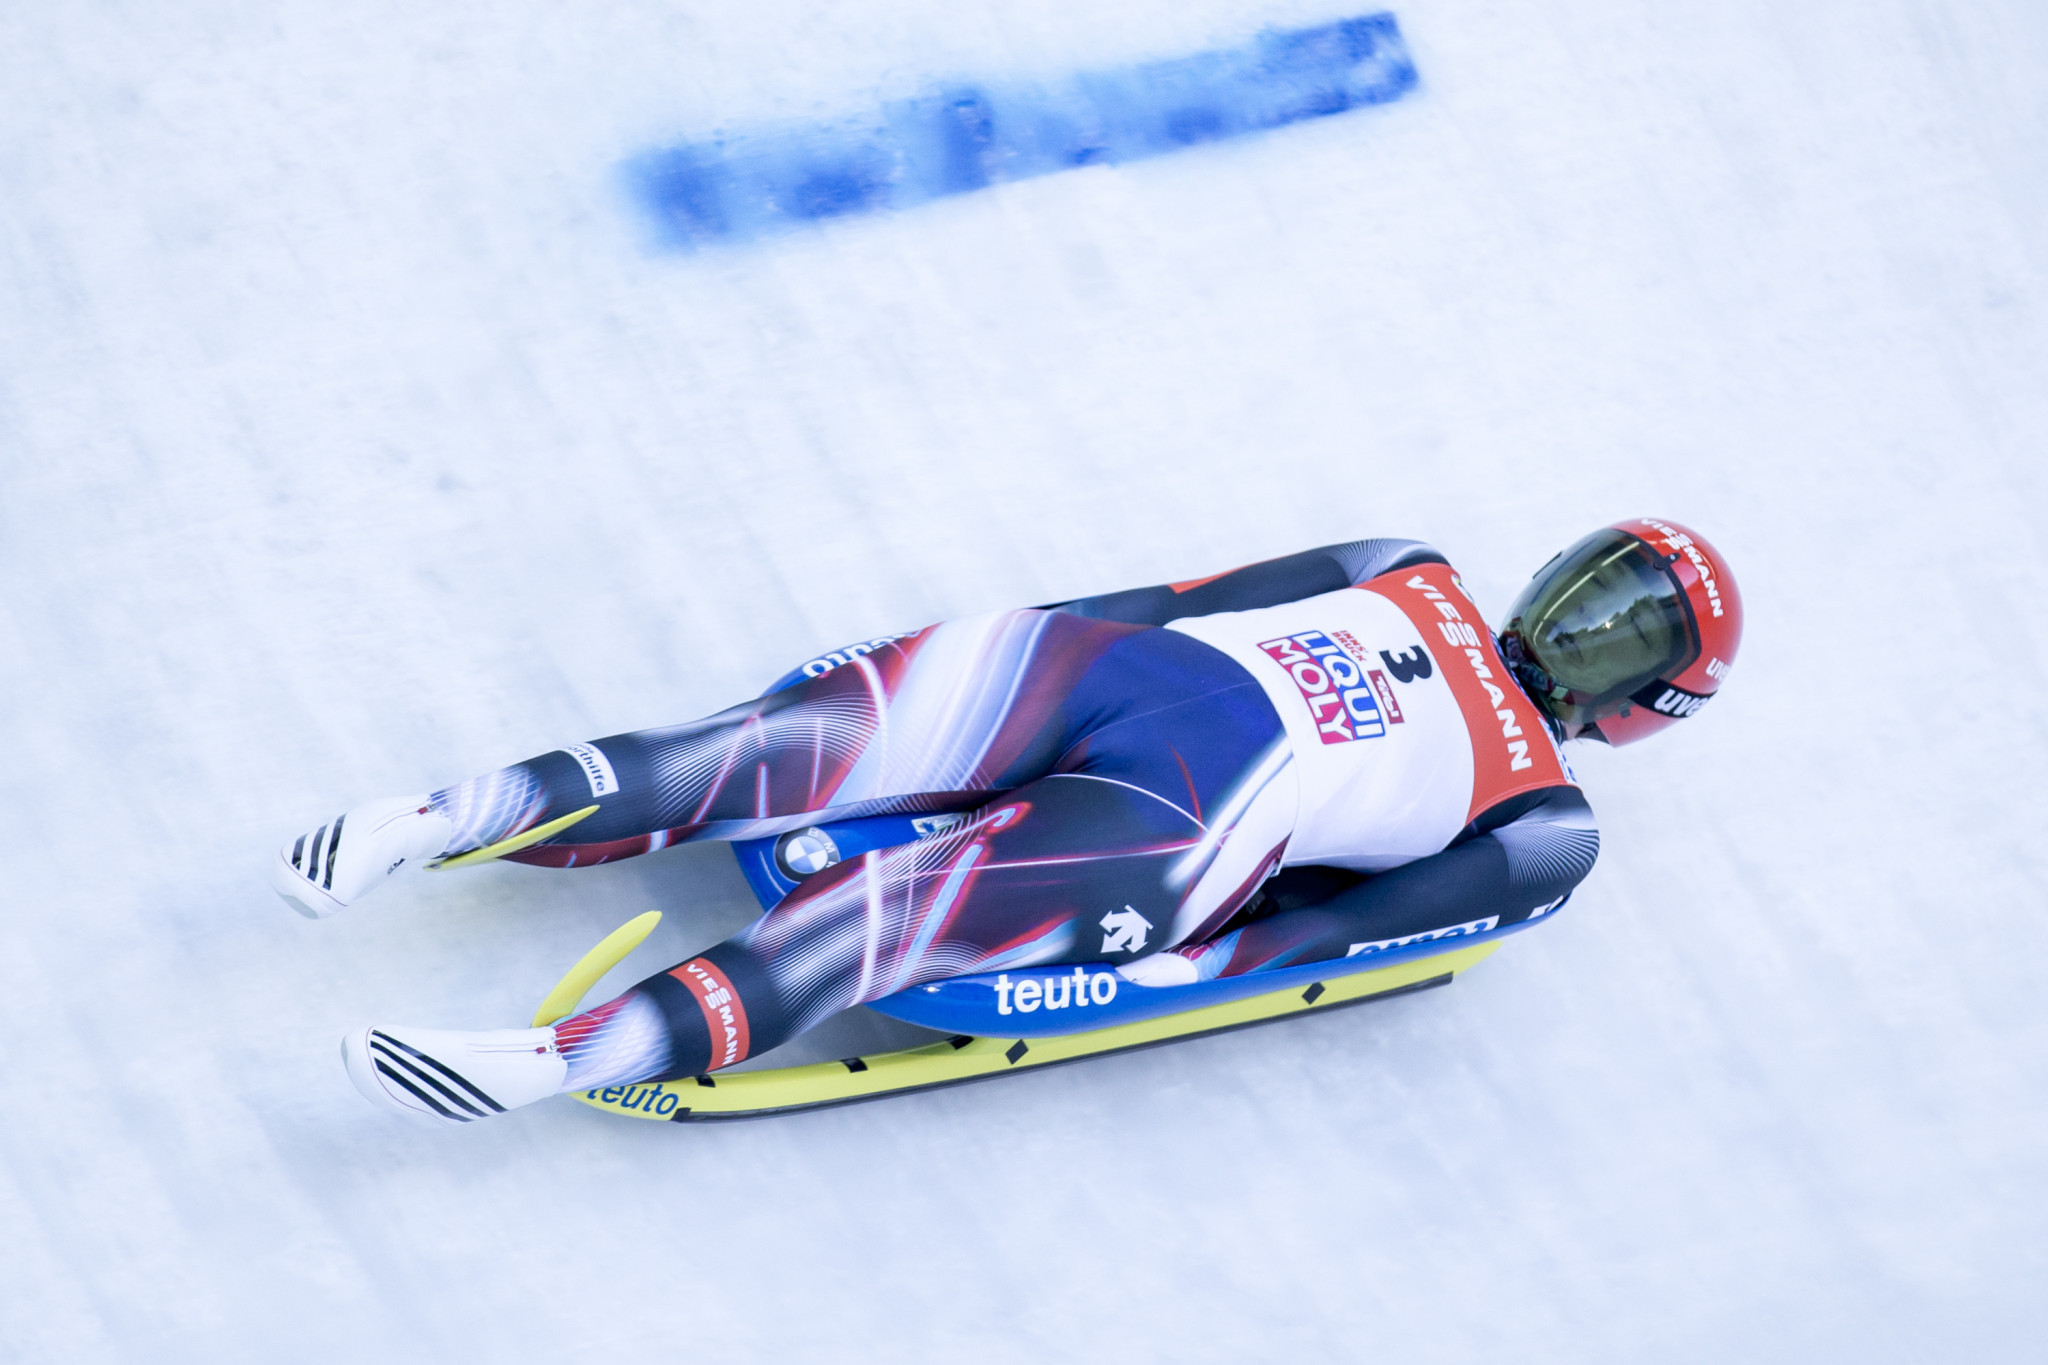 Tatjana Hüfner now holds the outright lead for women's Luge World Cup victories ©Getty Images